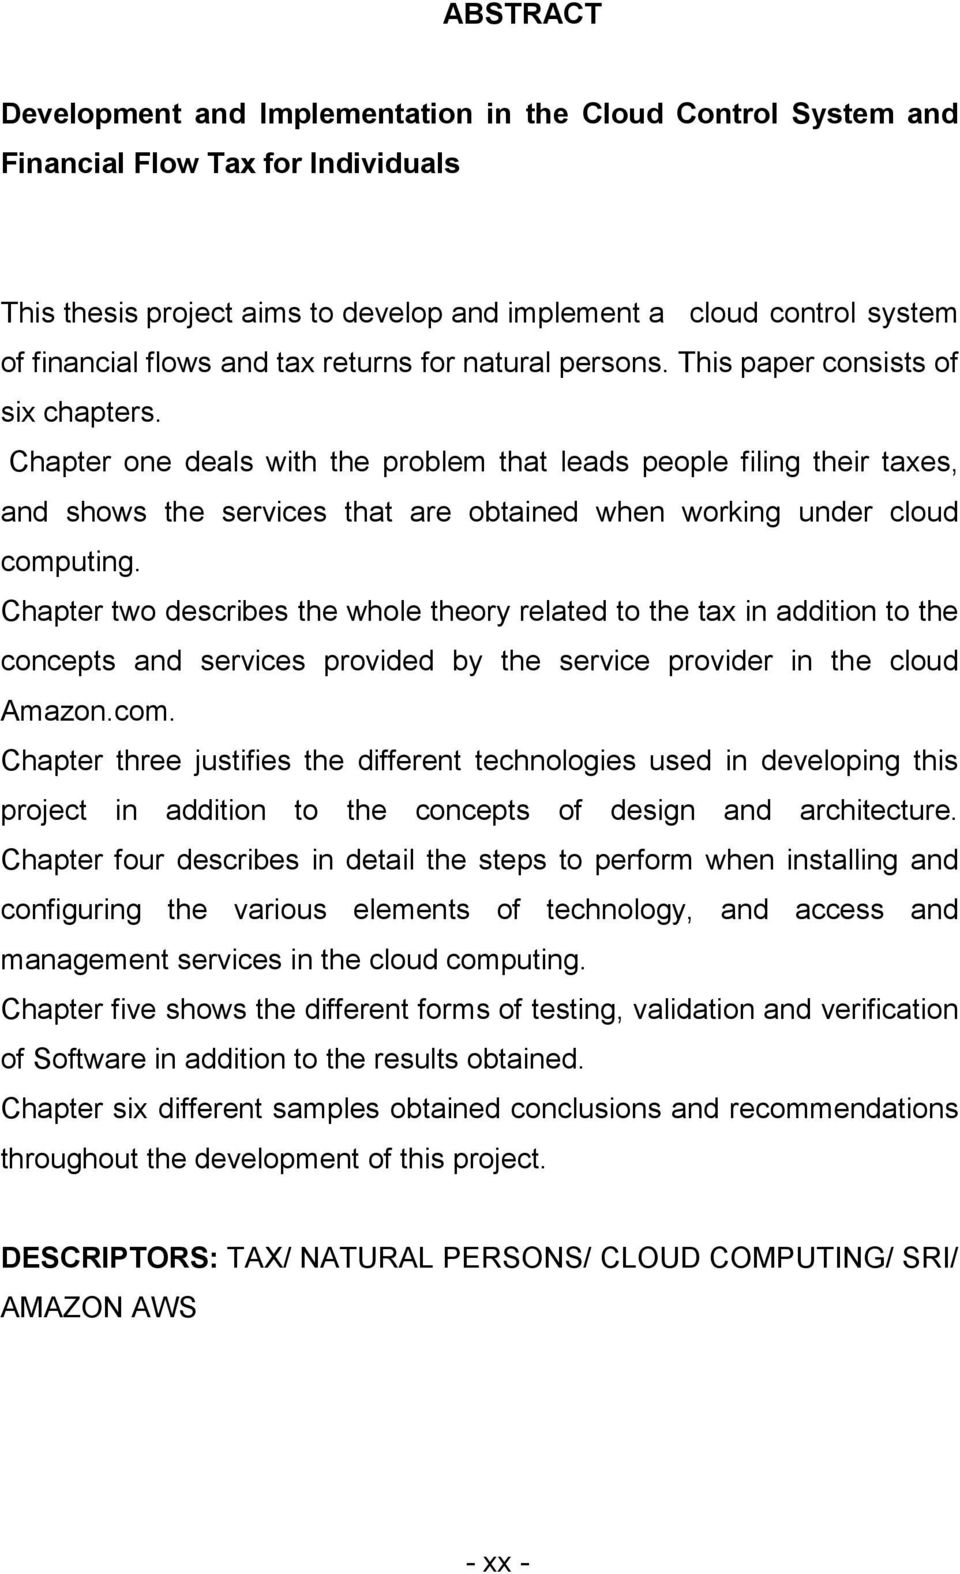 Chapter one deals with the problem that leads people filing their taxes, and shows the services that are obtained when working under cloud computing.